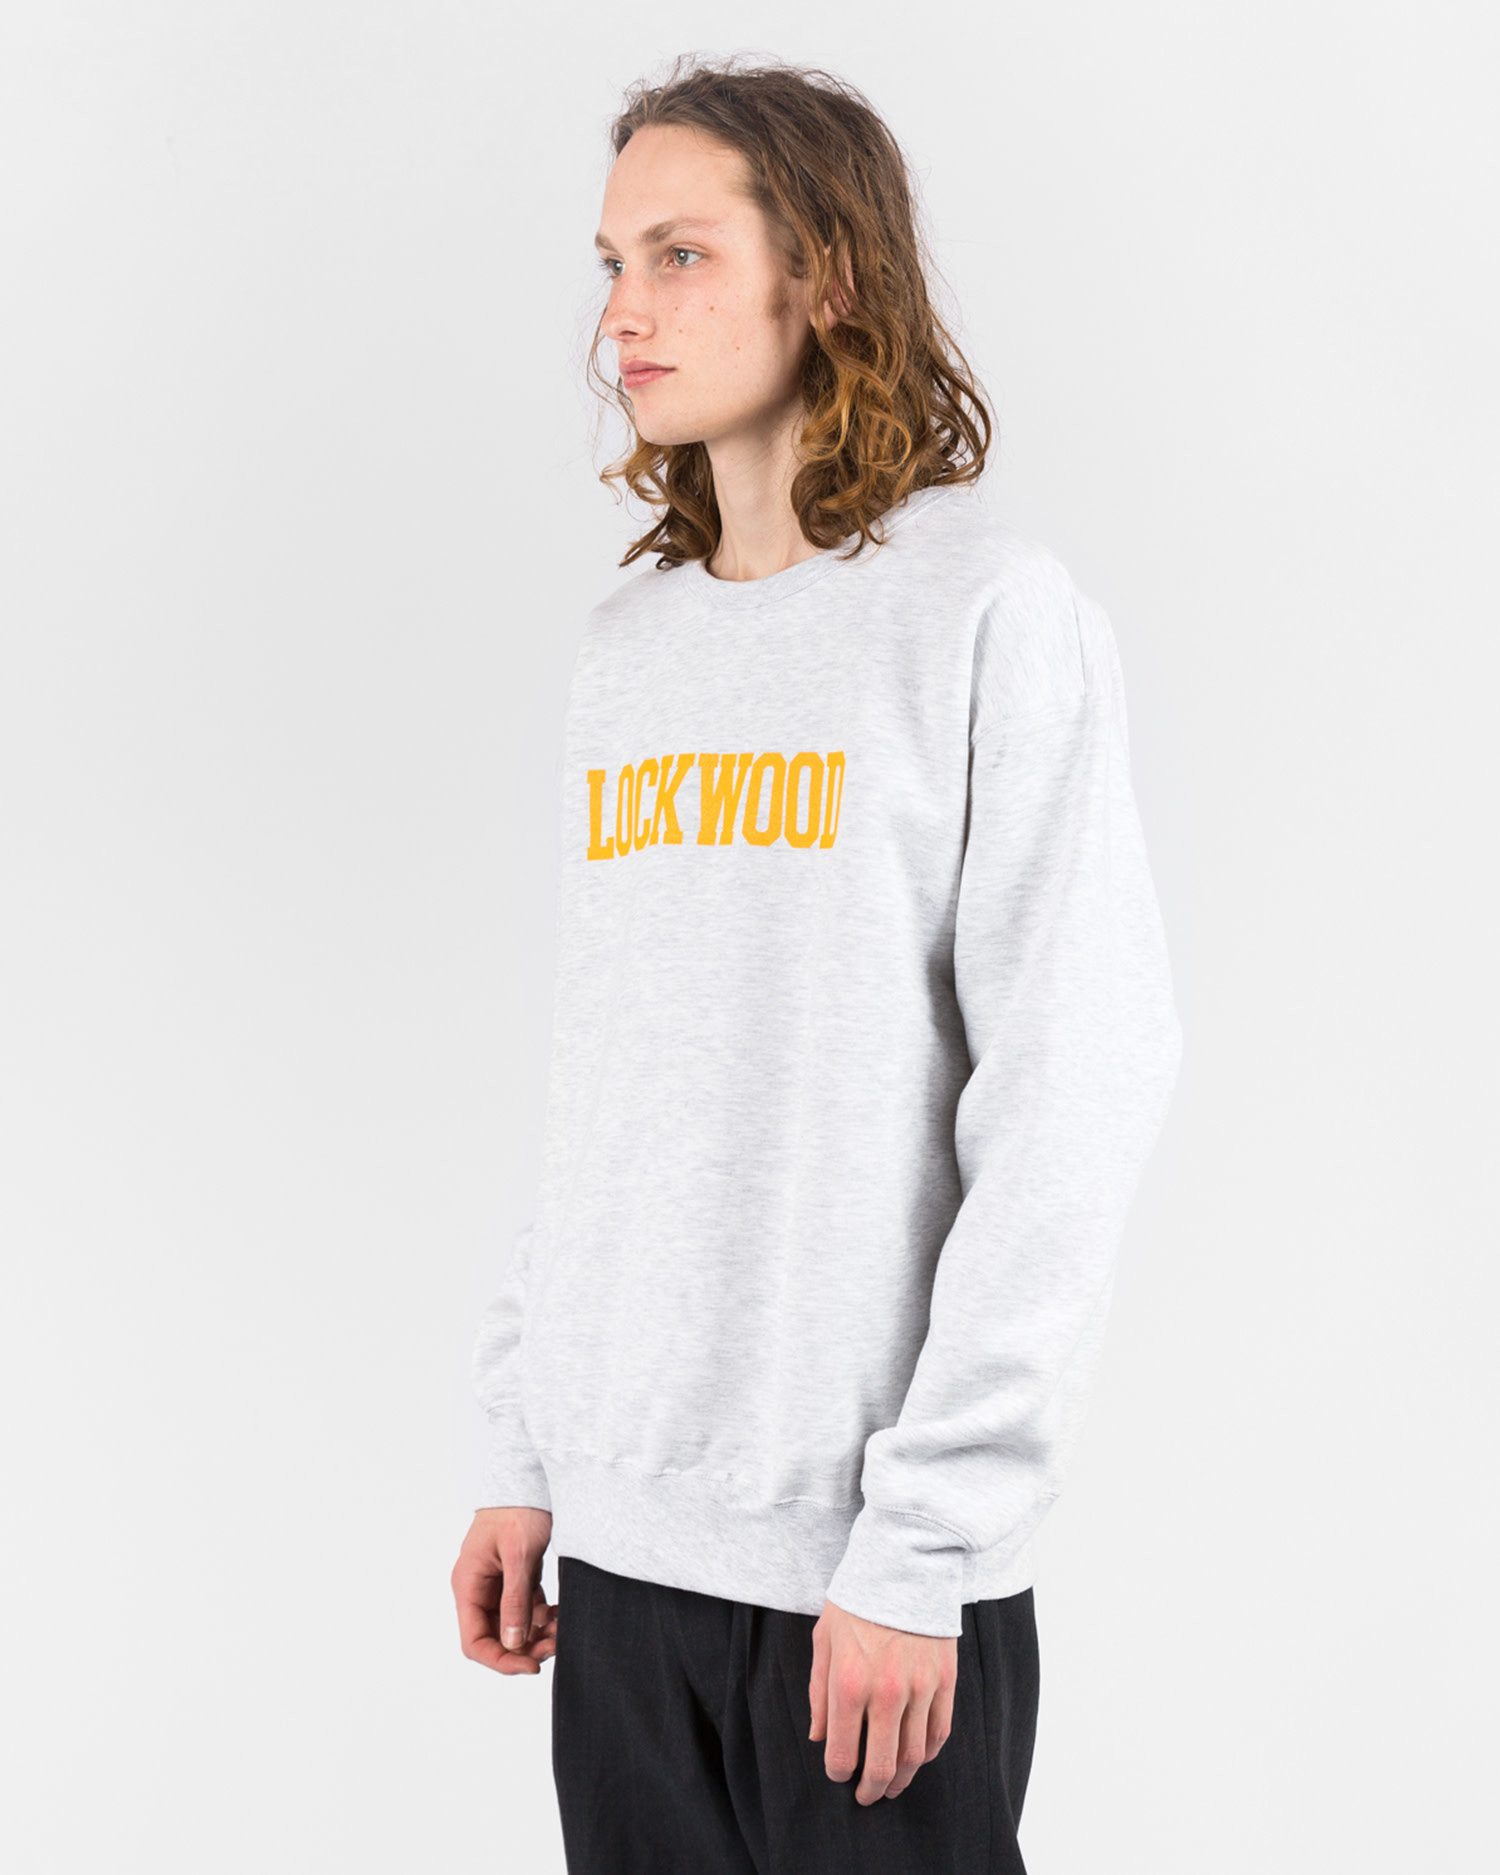 Lockwood CREW Sweater Script Grey/Yellow